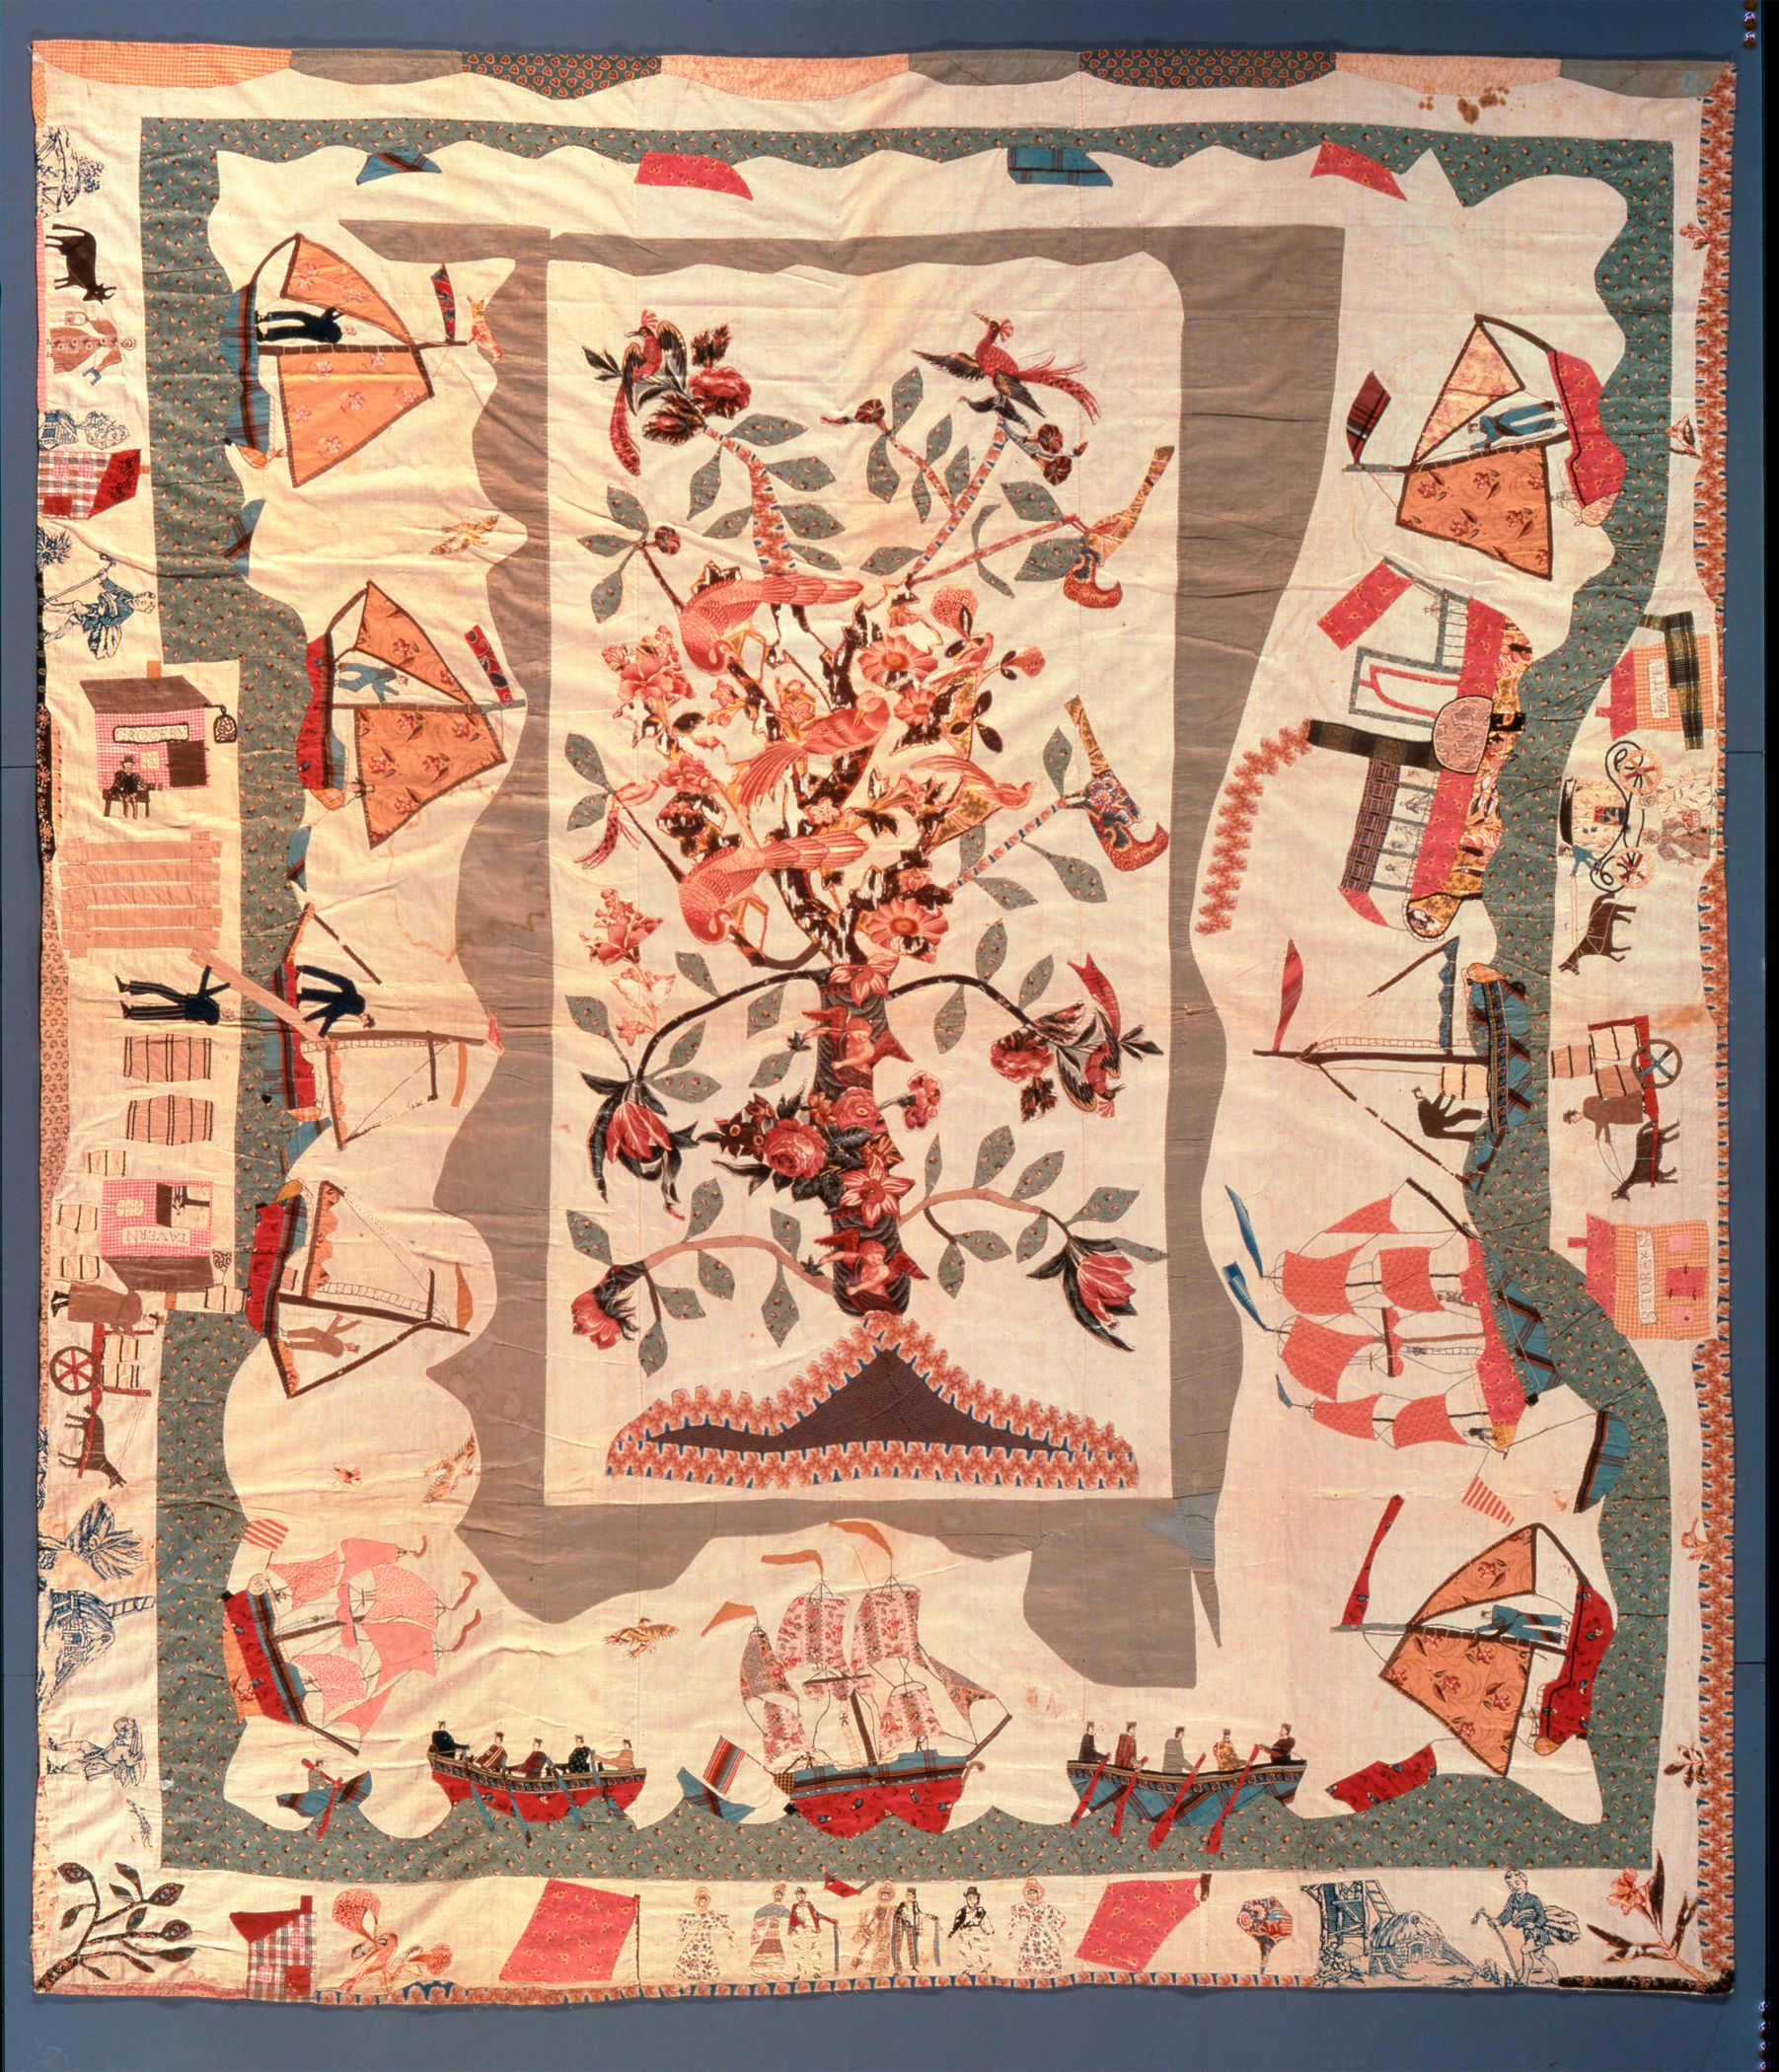 """One of the most unusual quilts ever made in America, known as """"Trade and Commerce"""". Its maker was clearly familiar with the busy river commerce so important in the development of New York State. This unique pictorial quilt, made about 1825 by Hannah Stockton Stiles, is a lively appliqué depiction of life along the shores and on the waters of a major river.   From: Inspired Traditions: Selections from the Jane Katcher Collection of Americana.  Fenimore Art Museum, Cooperstown, NY, 2011"""